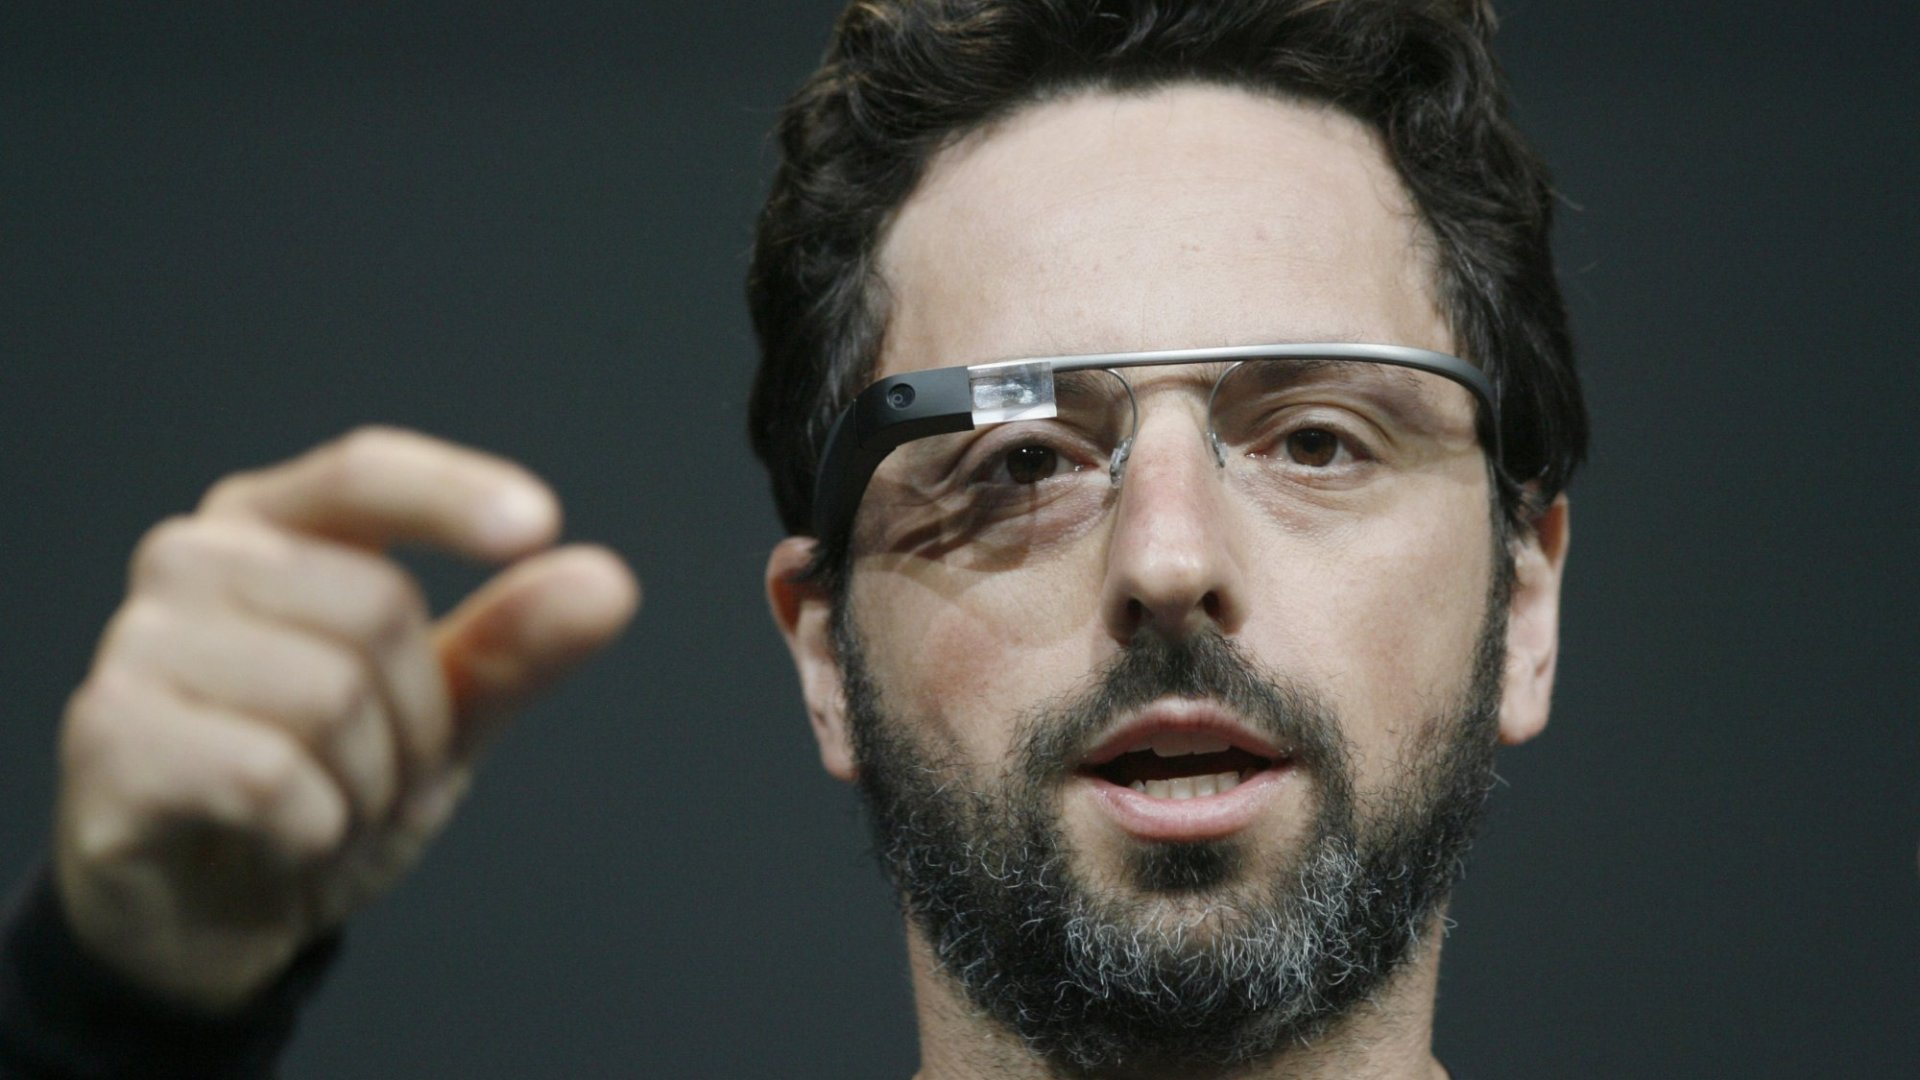 Sergey Brin, co-founder of Google appear at the keynote with the Google Glass.